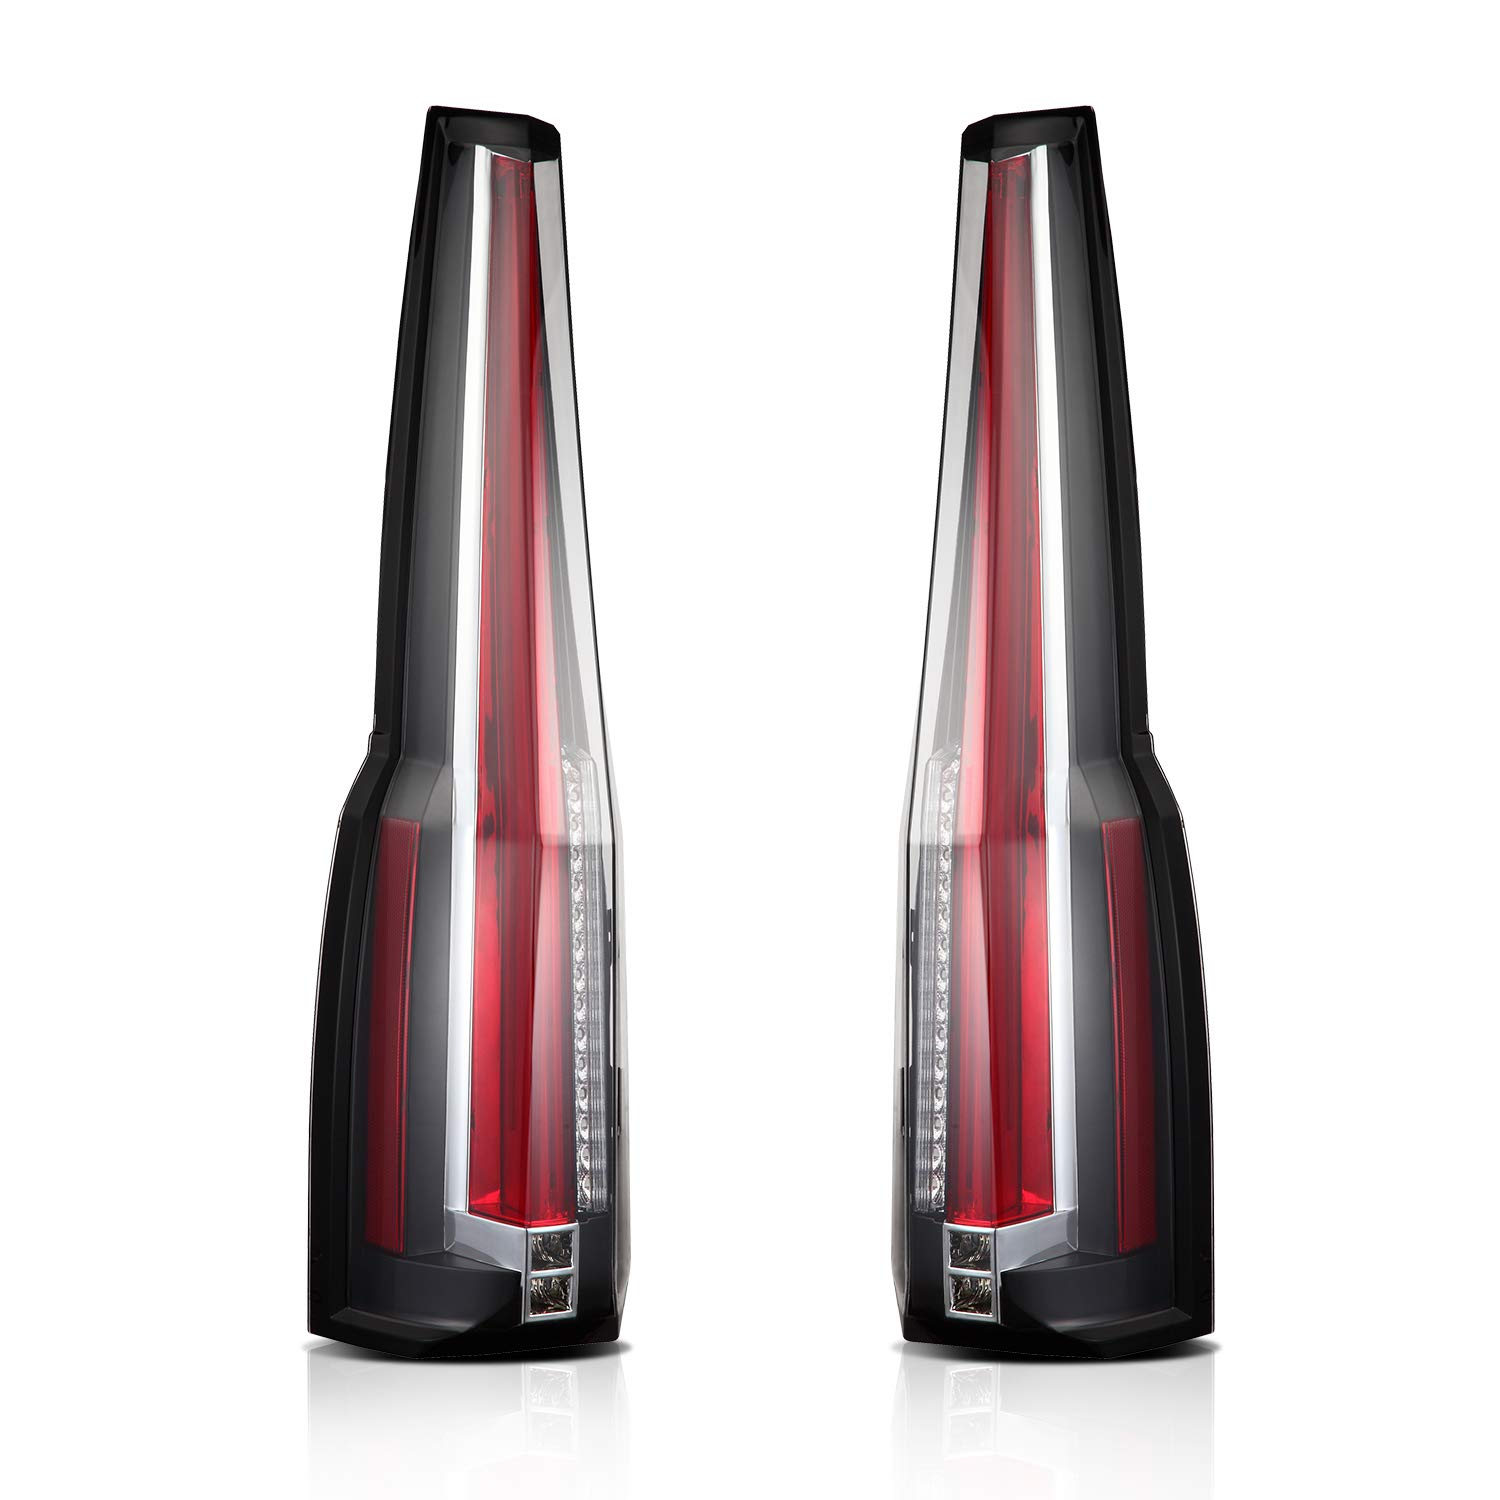 Aoedi Tail Lights Fit Cadillac Escalade 2007 2014 Rear 07 08 Wiring Schematic Light Assy Lamp Led Custom Replacement Sold In Pair Automotive